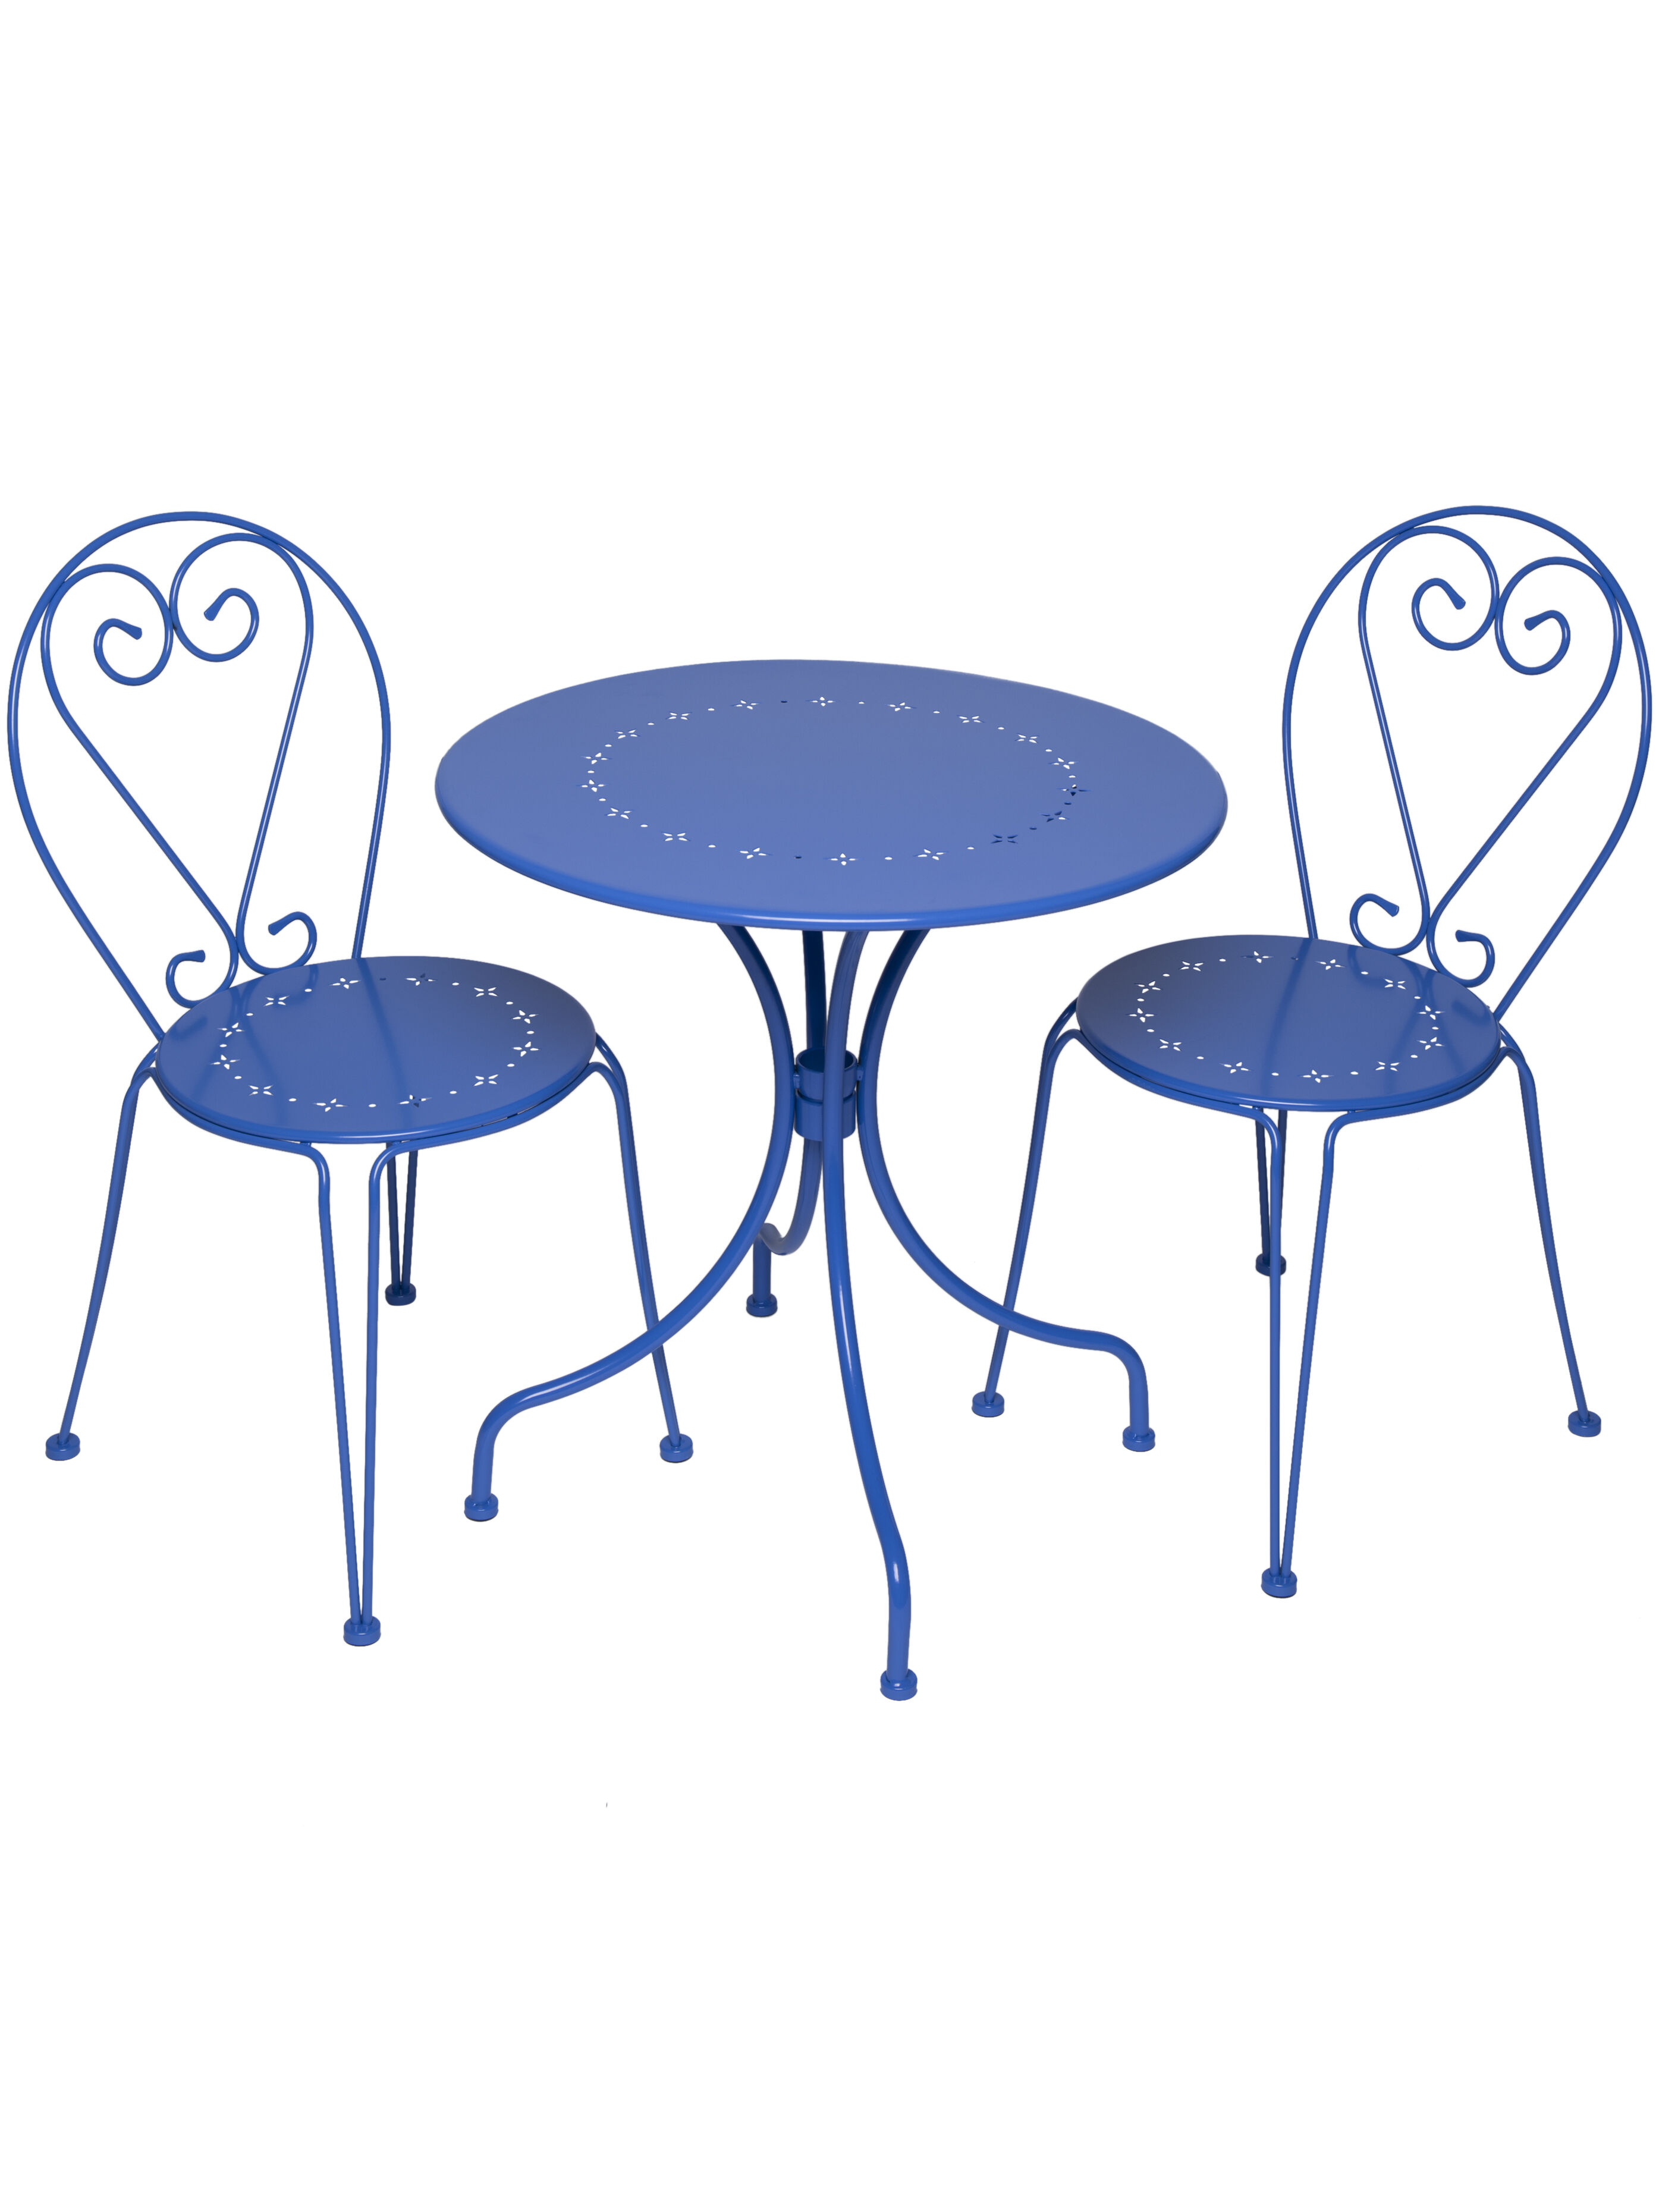 blue bistro chairs hydraulic styling chair patio table set 7 piece oval folding gardeners